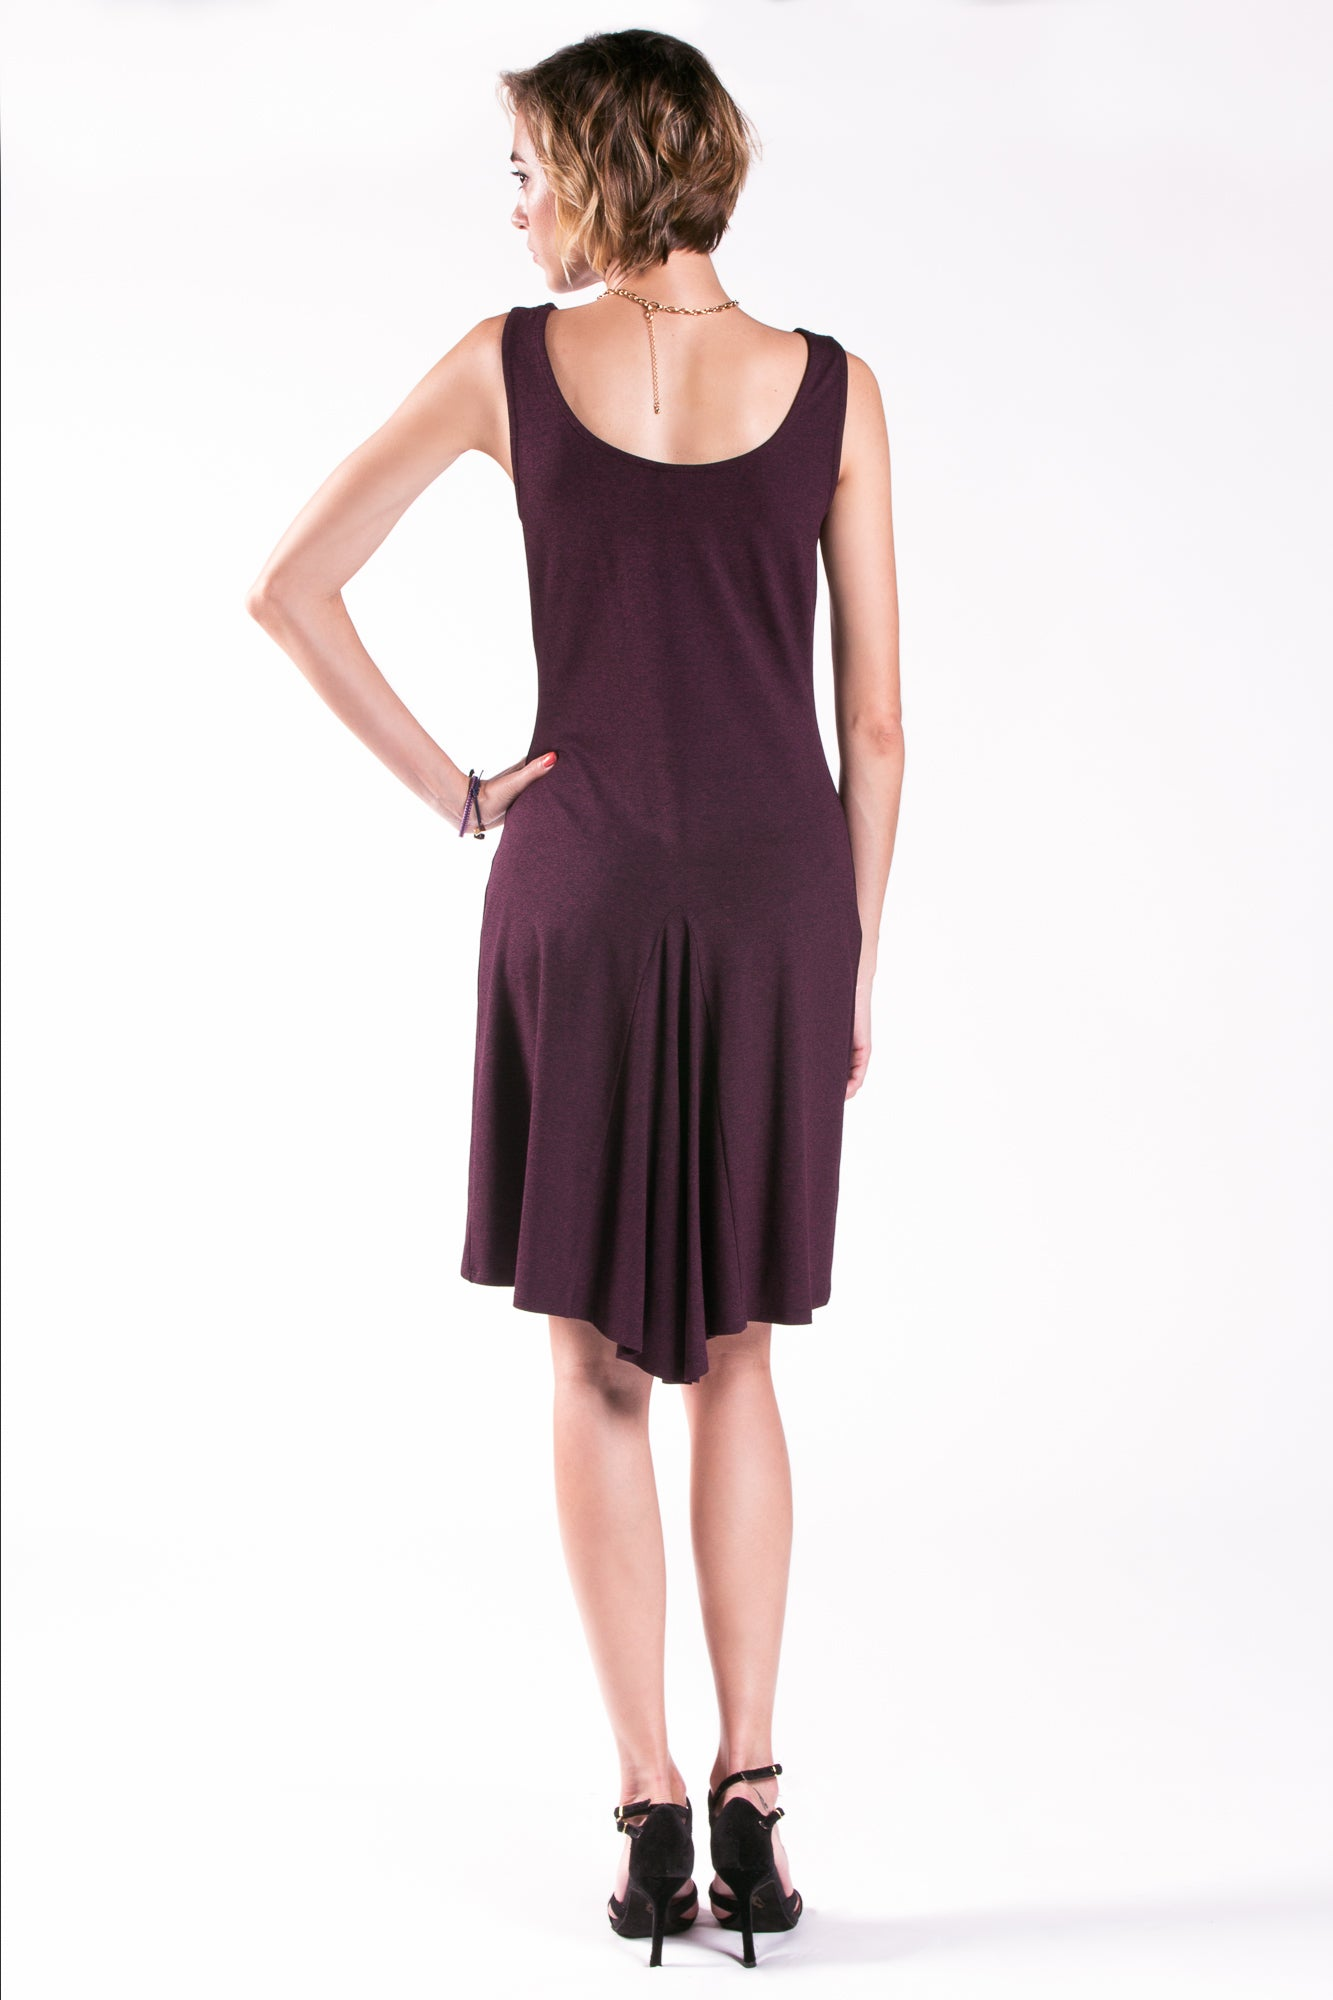 Ana Tango Dress Cowl Neck Sleeveless with Godet Back